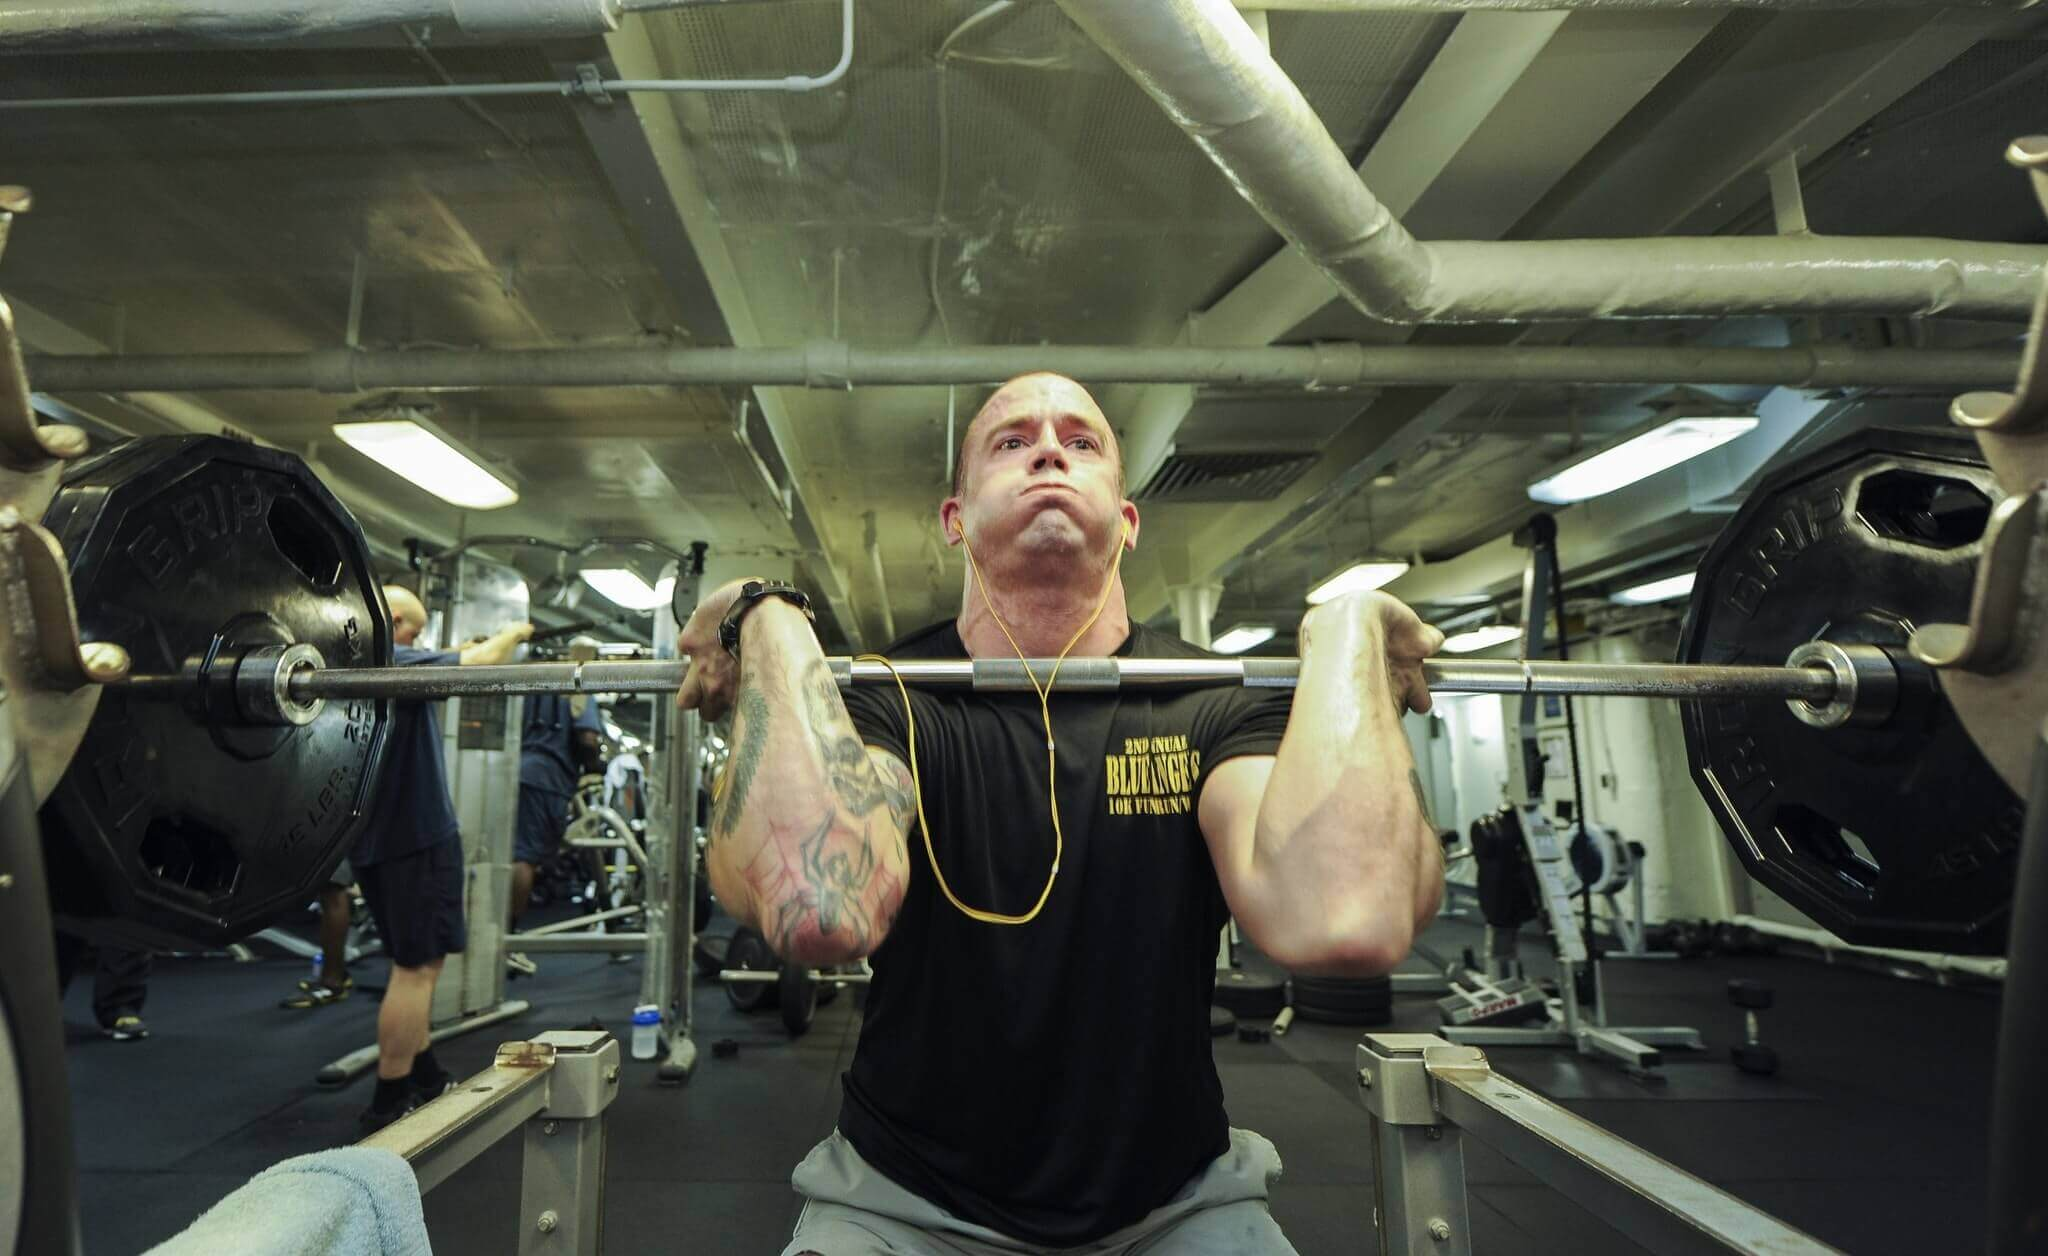 Workout addicts don't have greater mortality risk, study reports